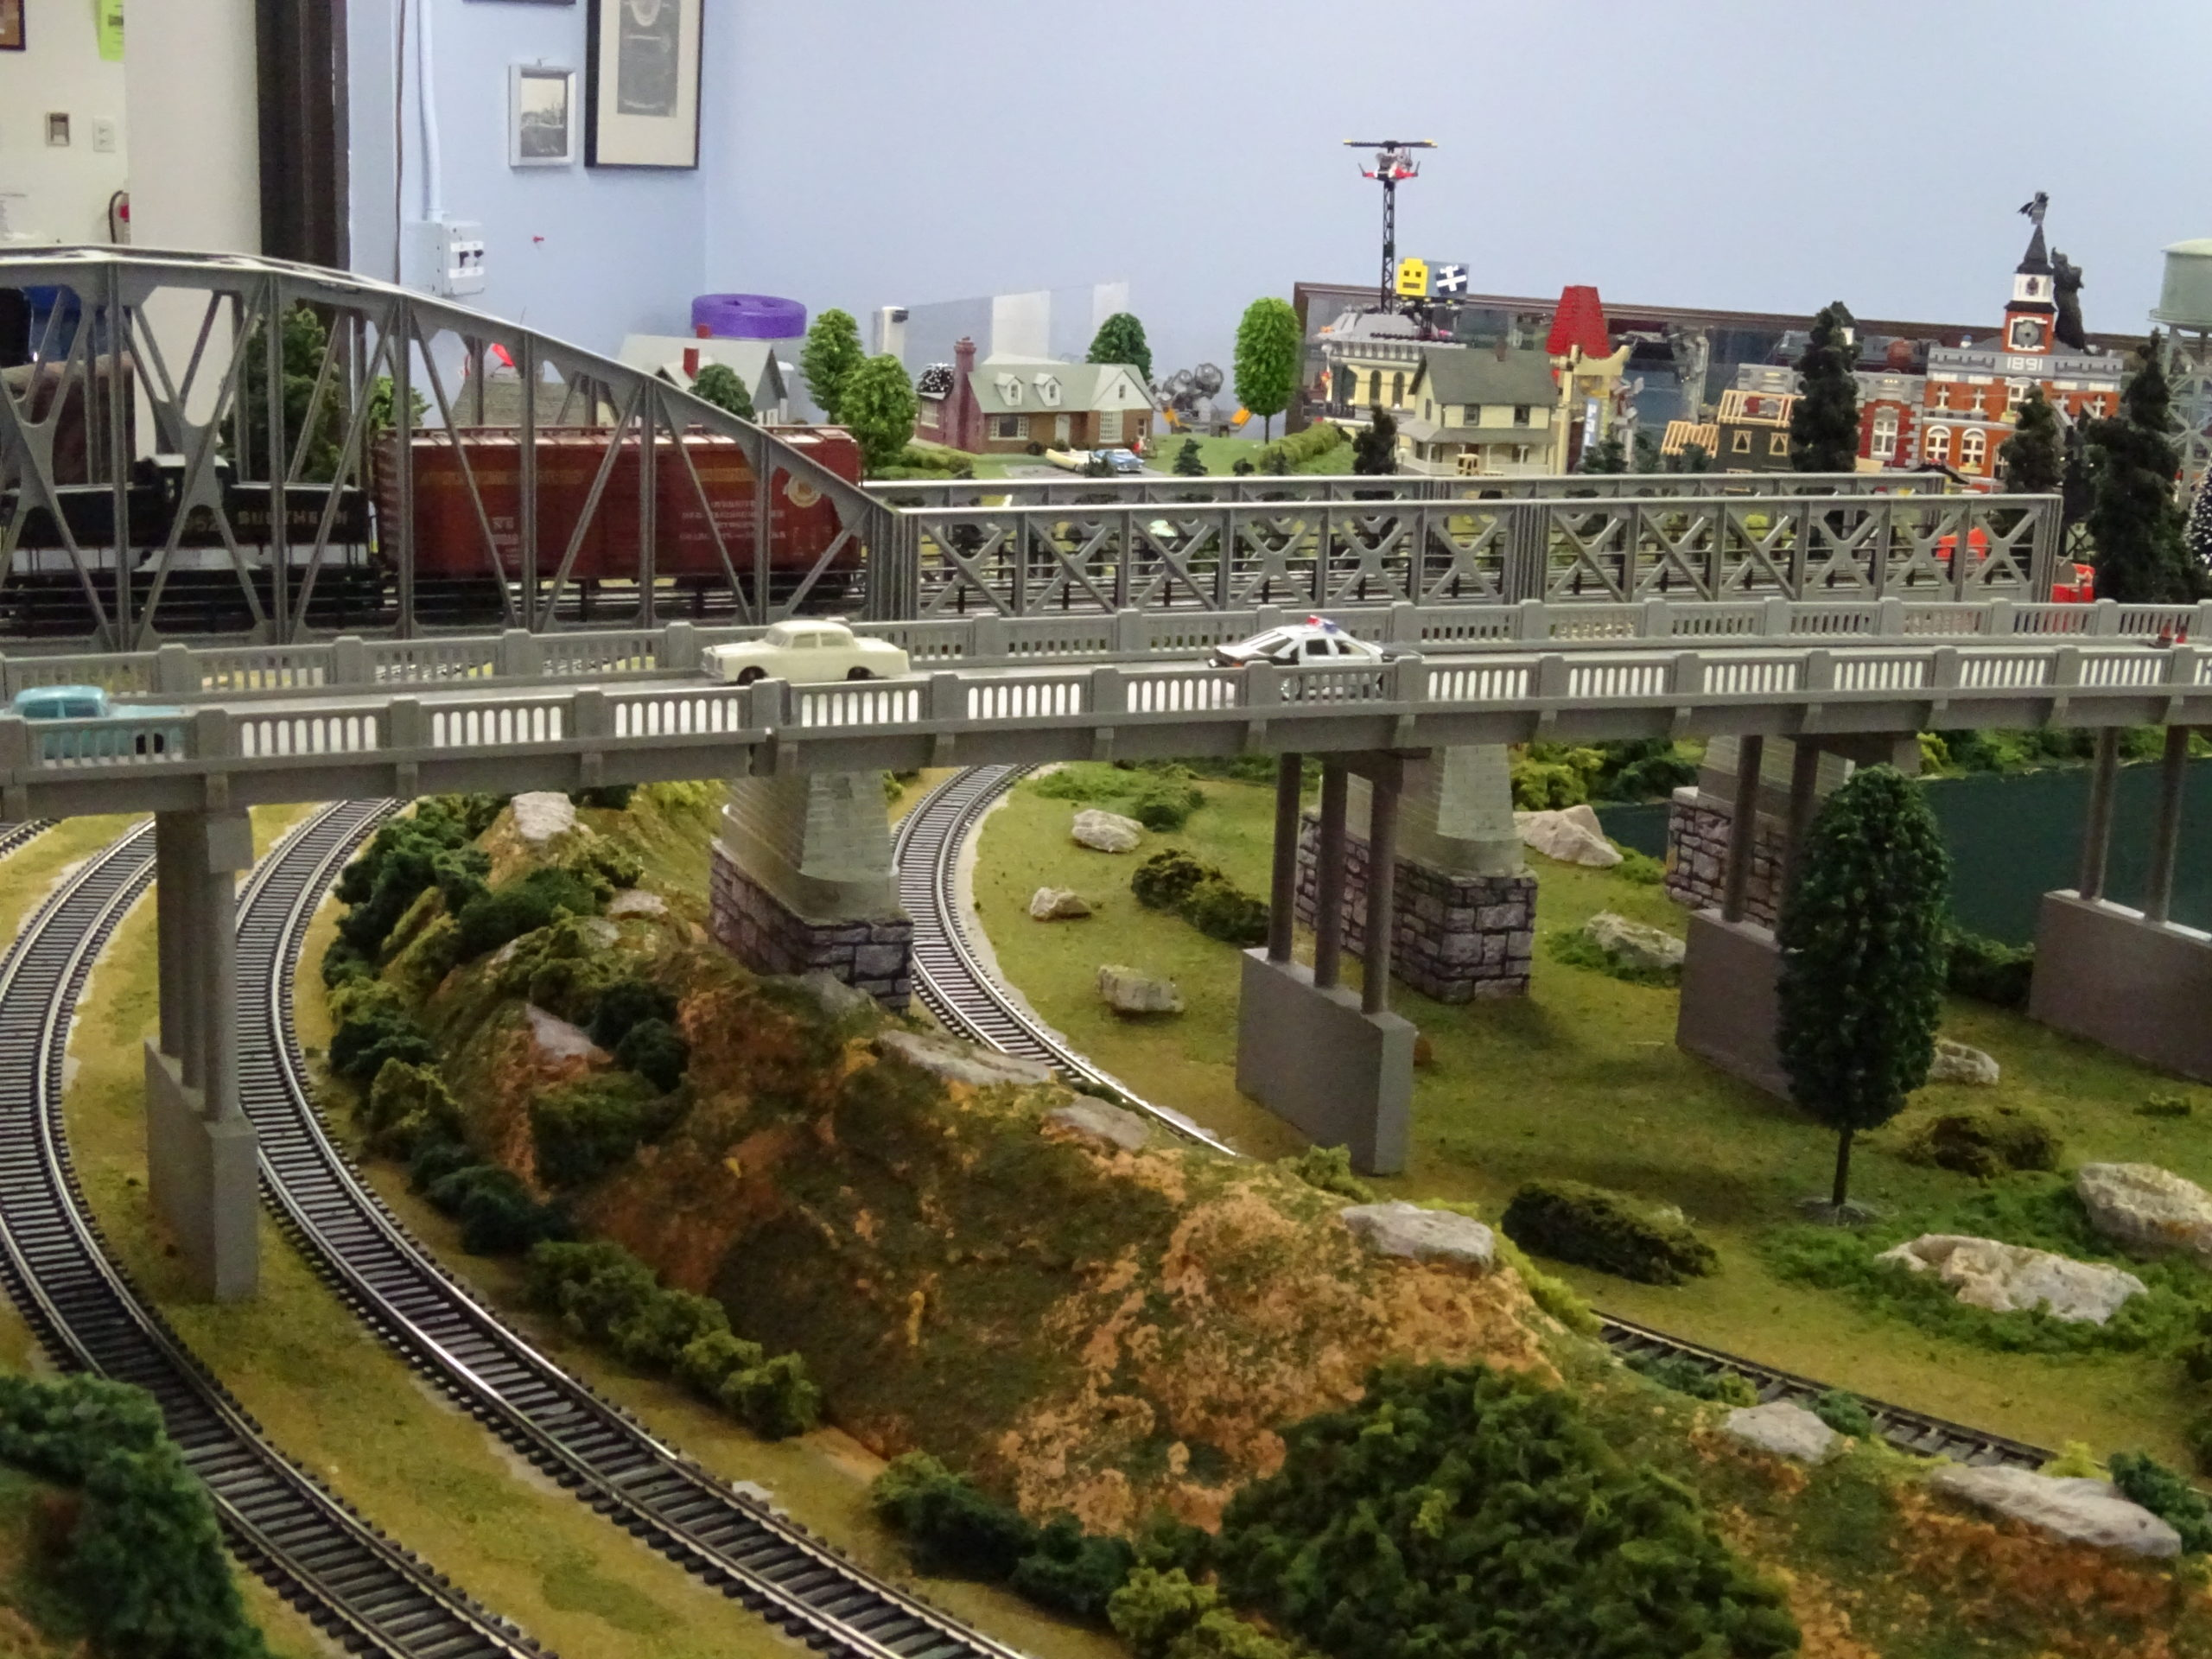 Neuse River Valley Model Railroad Club Station